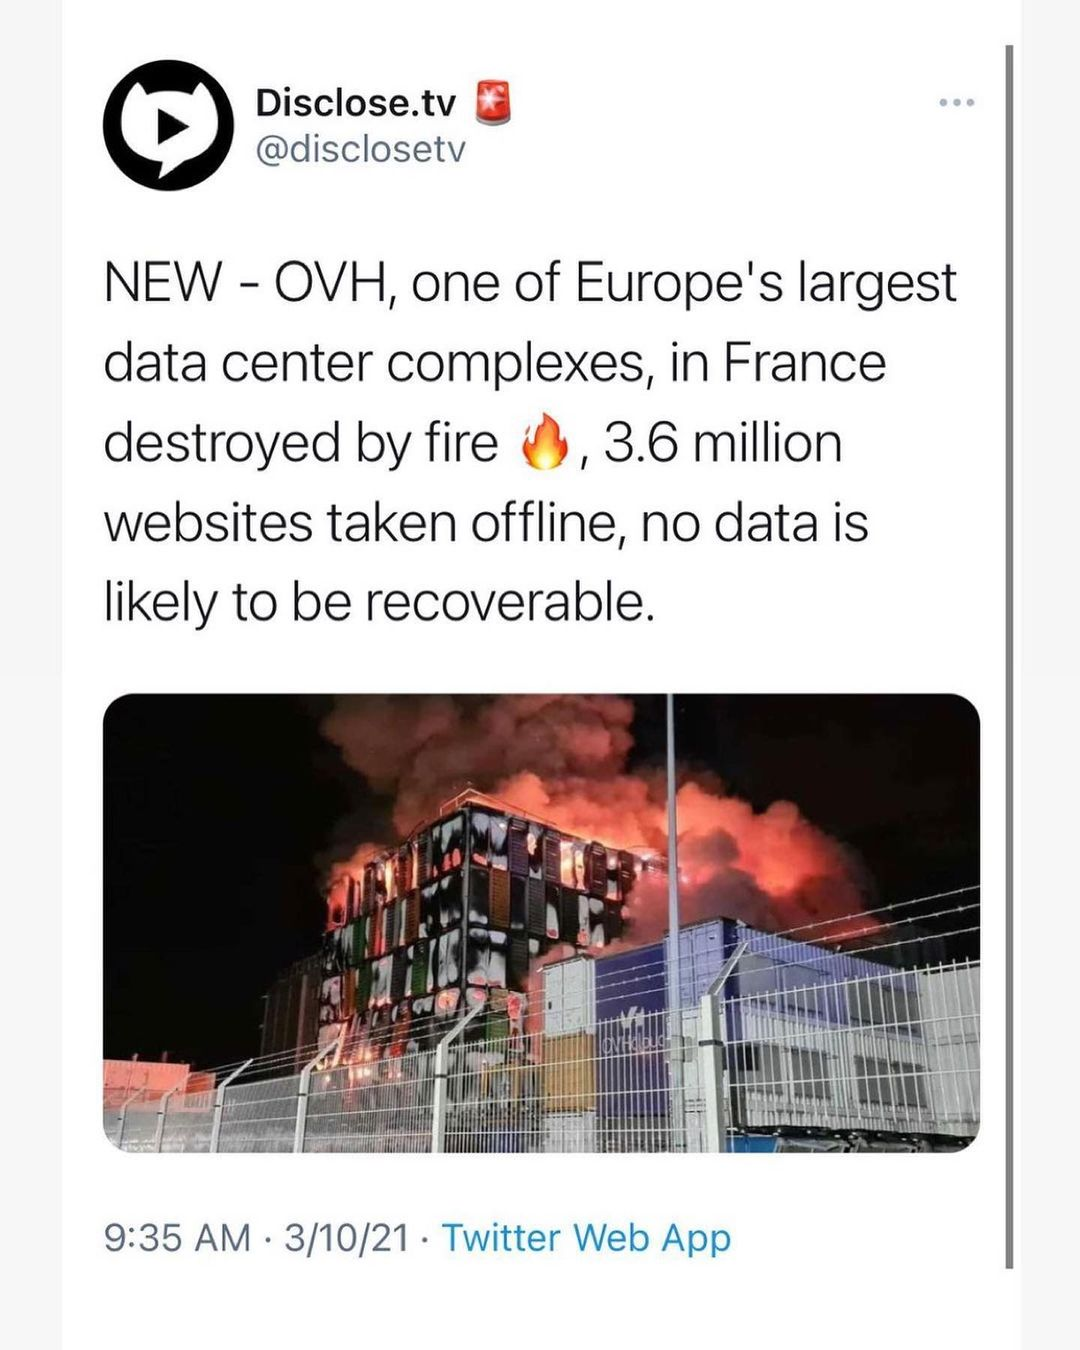 OVH, one of Europe's largest data center complexes, which 1. was a host for Wiki